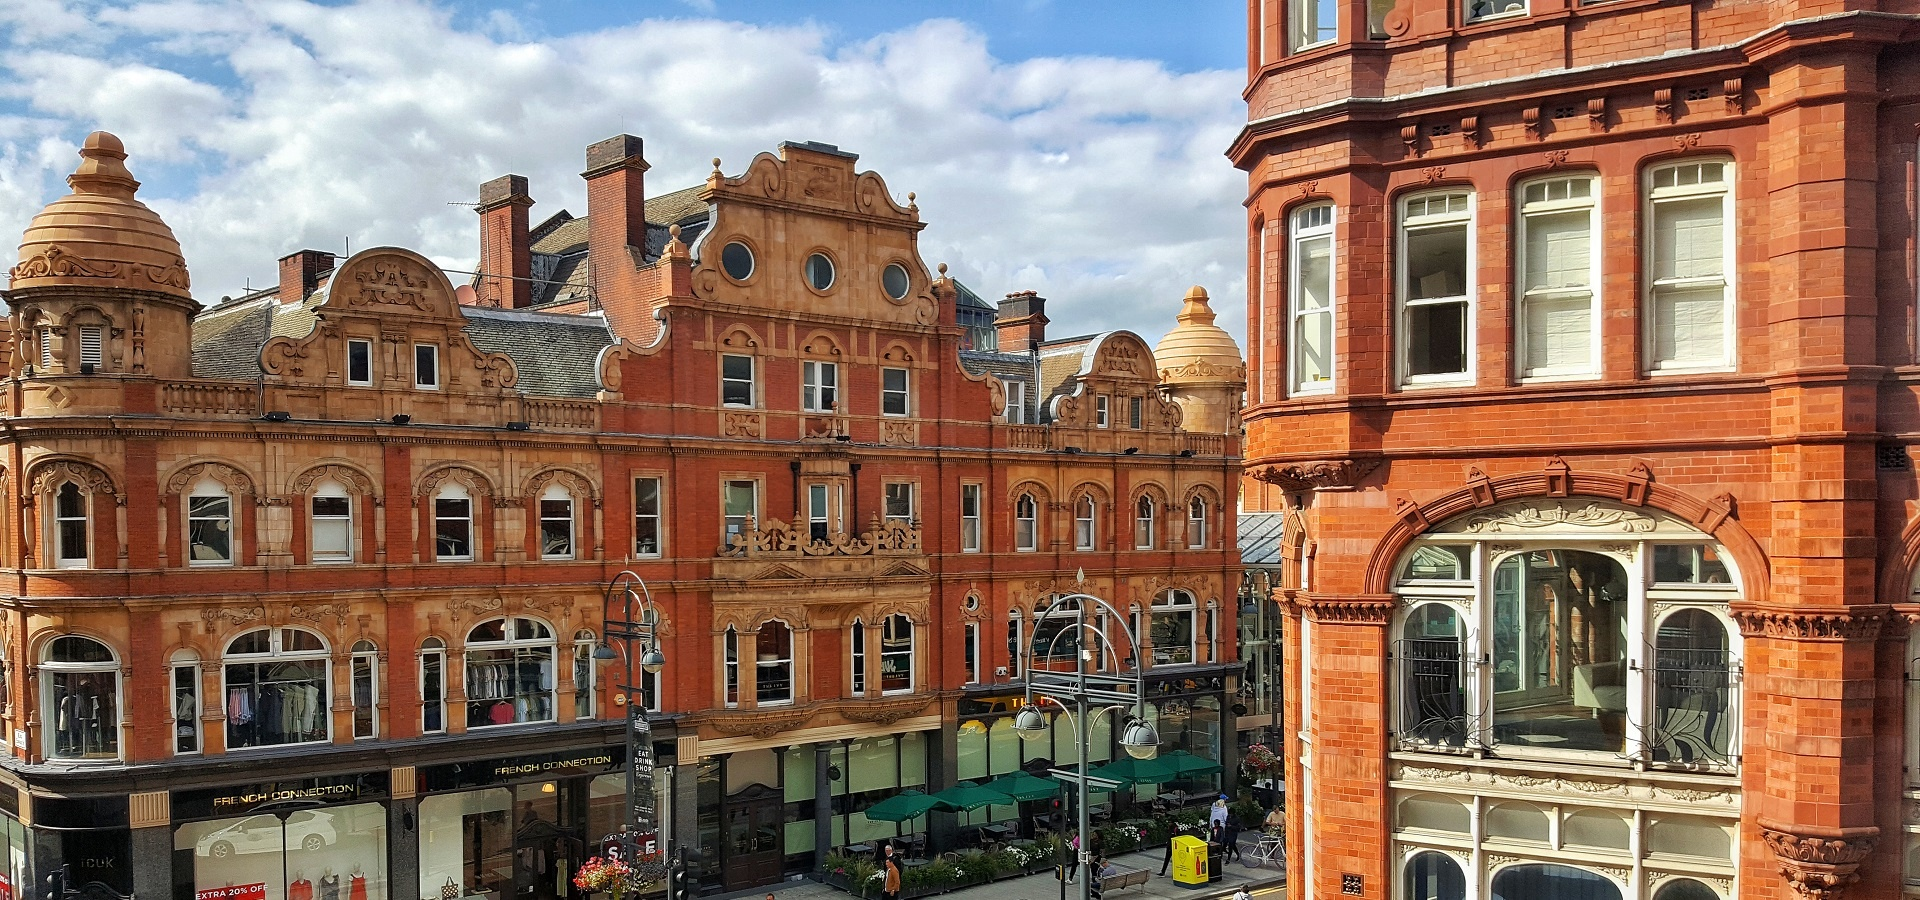 Victoria Quarter architecture in the sunshine - credit Visit Leeds